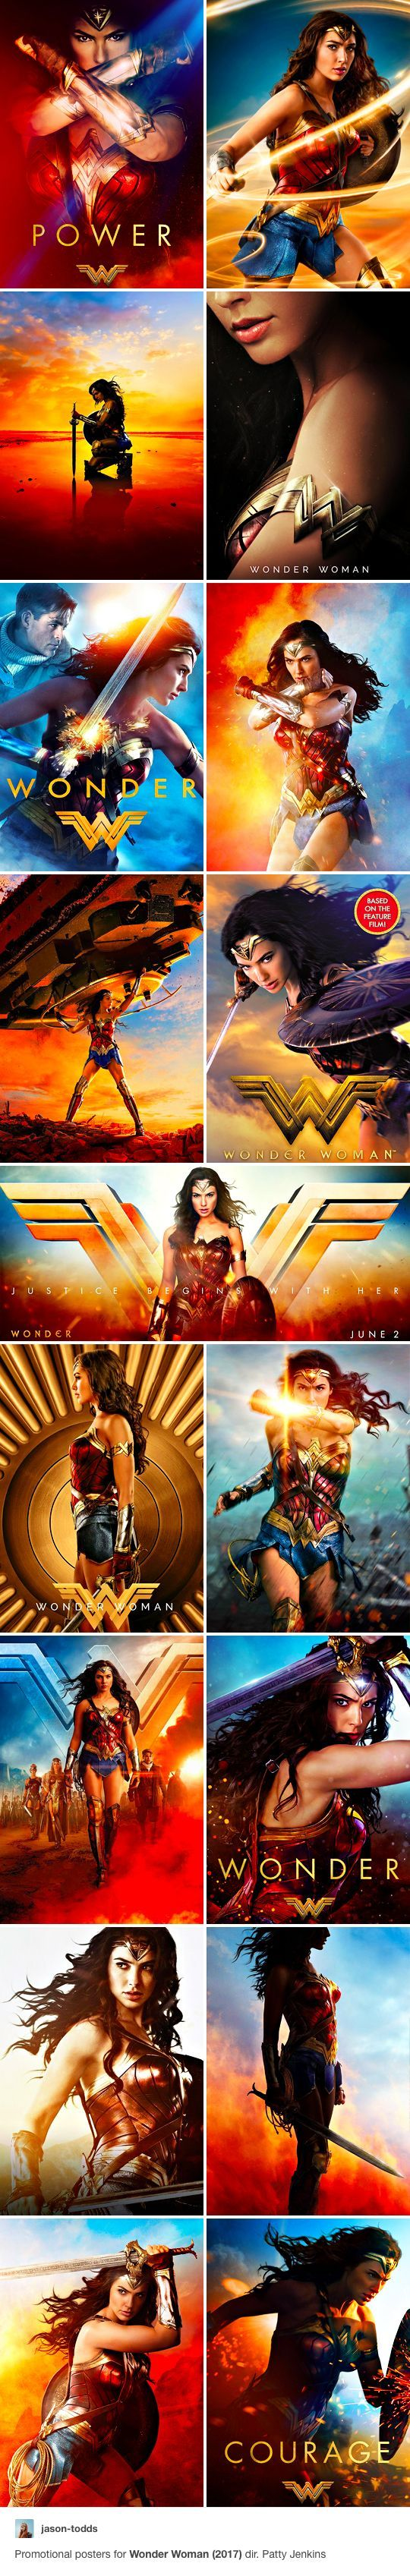 Discover the Top 10 Powerful Gal Gadot (Wonder Woman) Quotes: DC Comics, Wonder Woman, Diana Prince, Superman v. Batman, Justice League, DC Universe